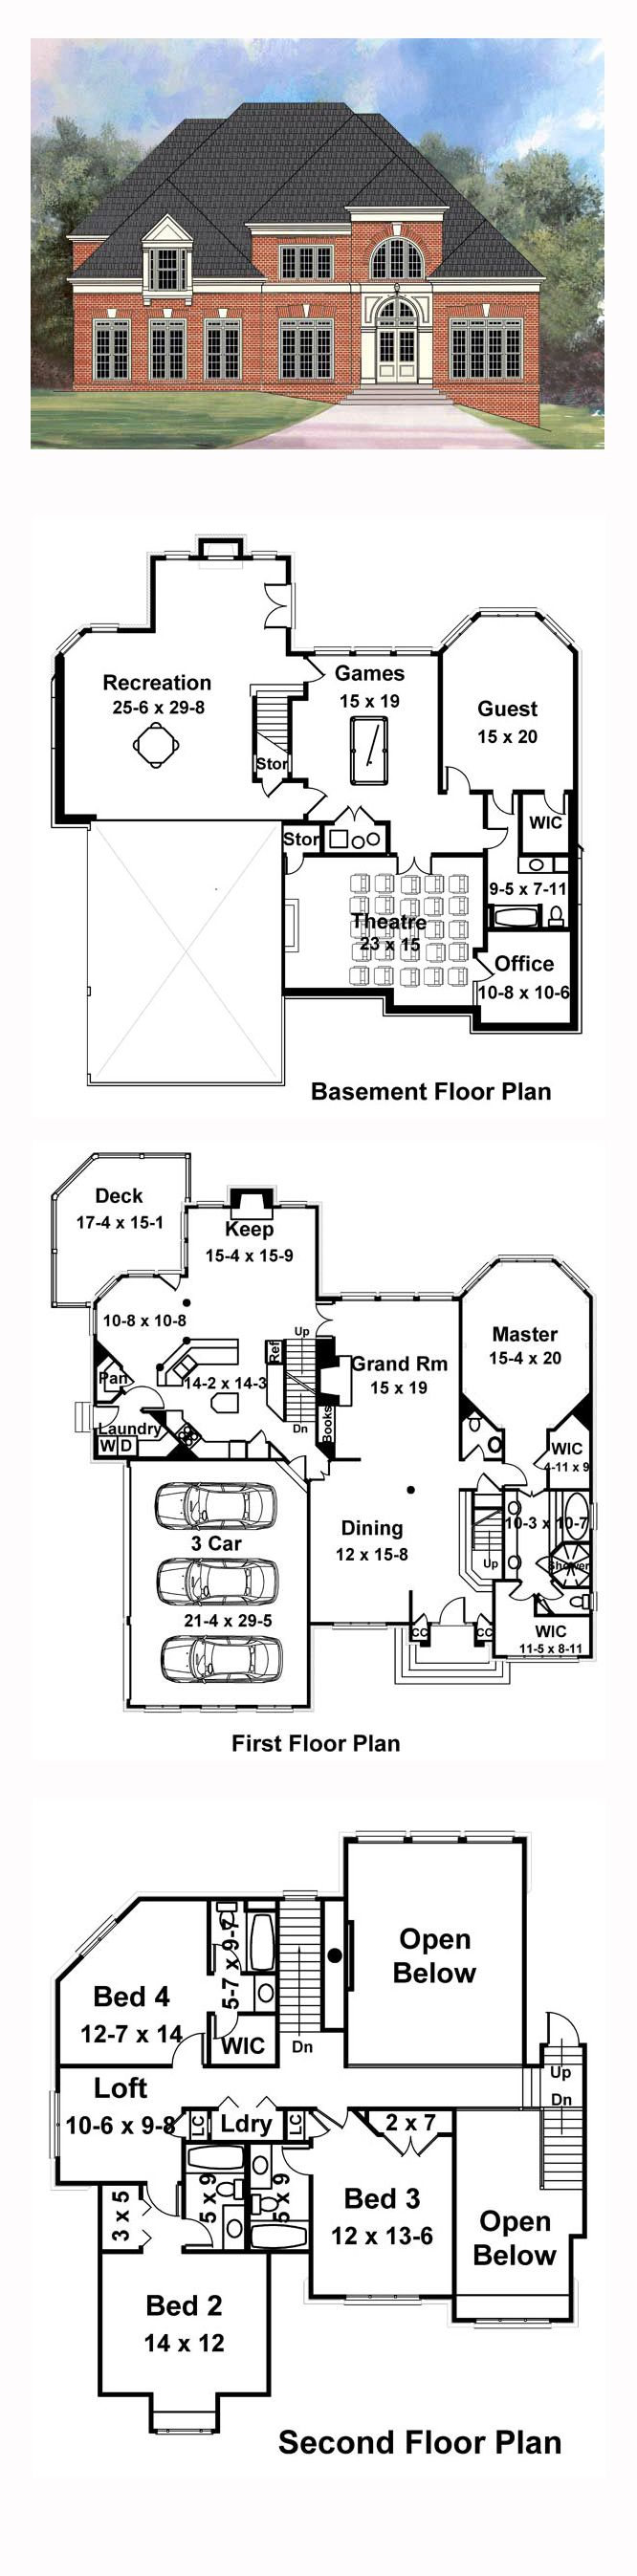 Pinfamily Home Plans On Greek Revival House Plans  Pinterest Simple 15 X 20 Kitchen Design Inspiration Design